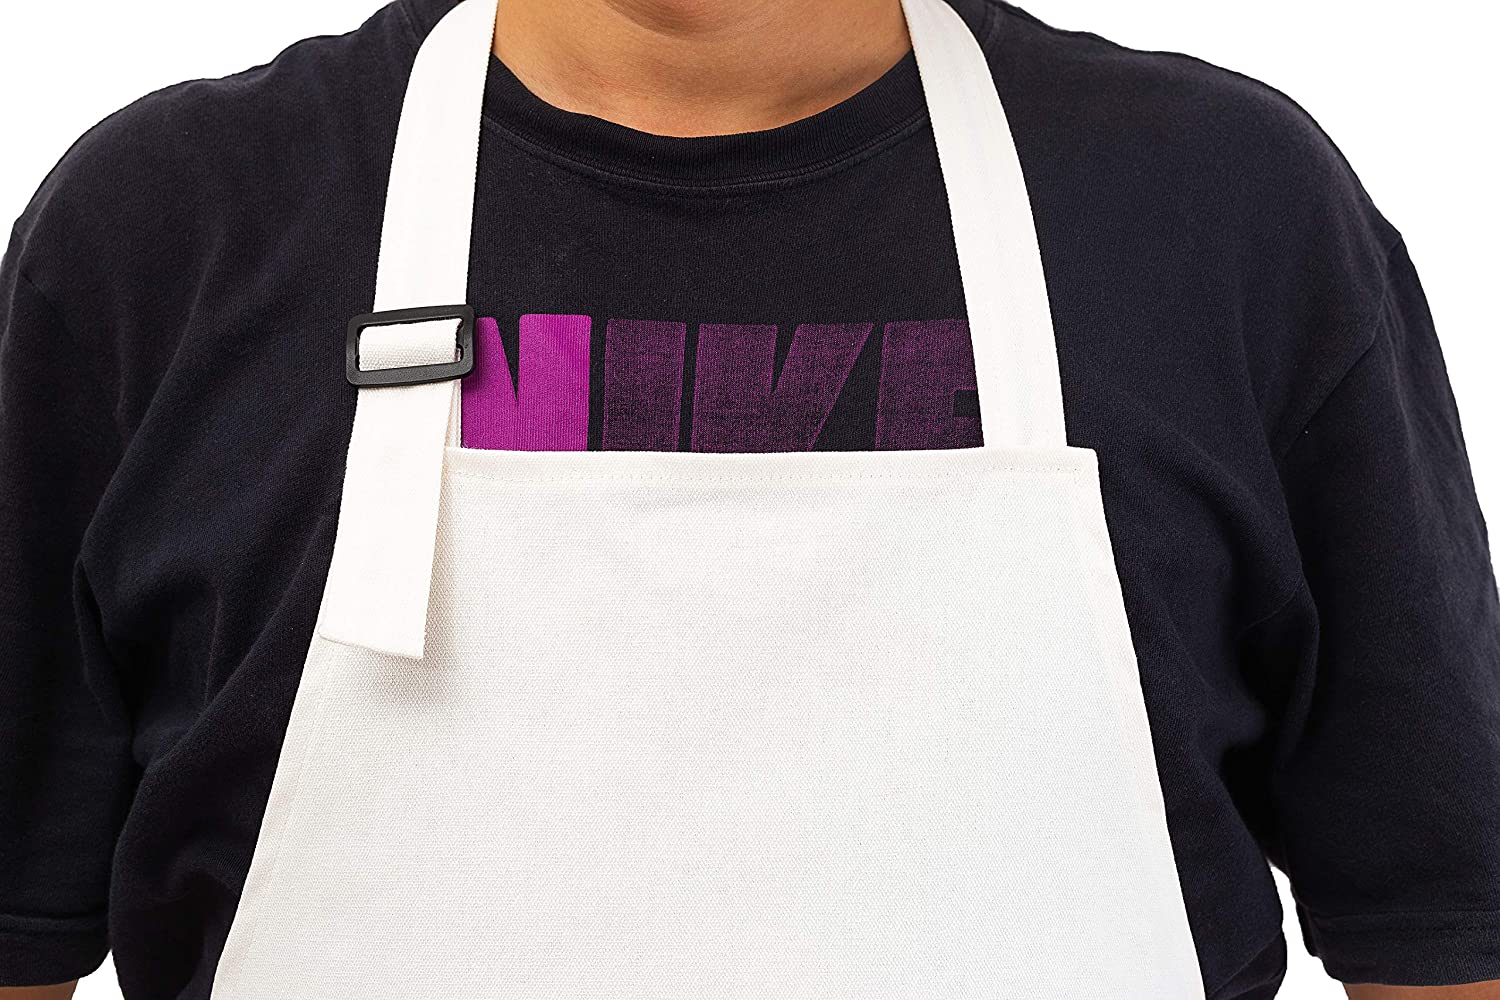 fun/_idea Mr Mrs Heart Funny Embroidered Bib Aprons Set Personalized Present Gifts Couples Wedding Anniversary Engagement Newlywed His /& Hers Cooking Chef Apron